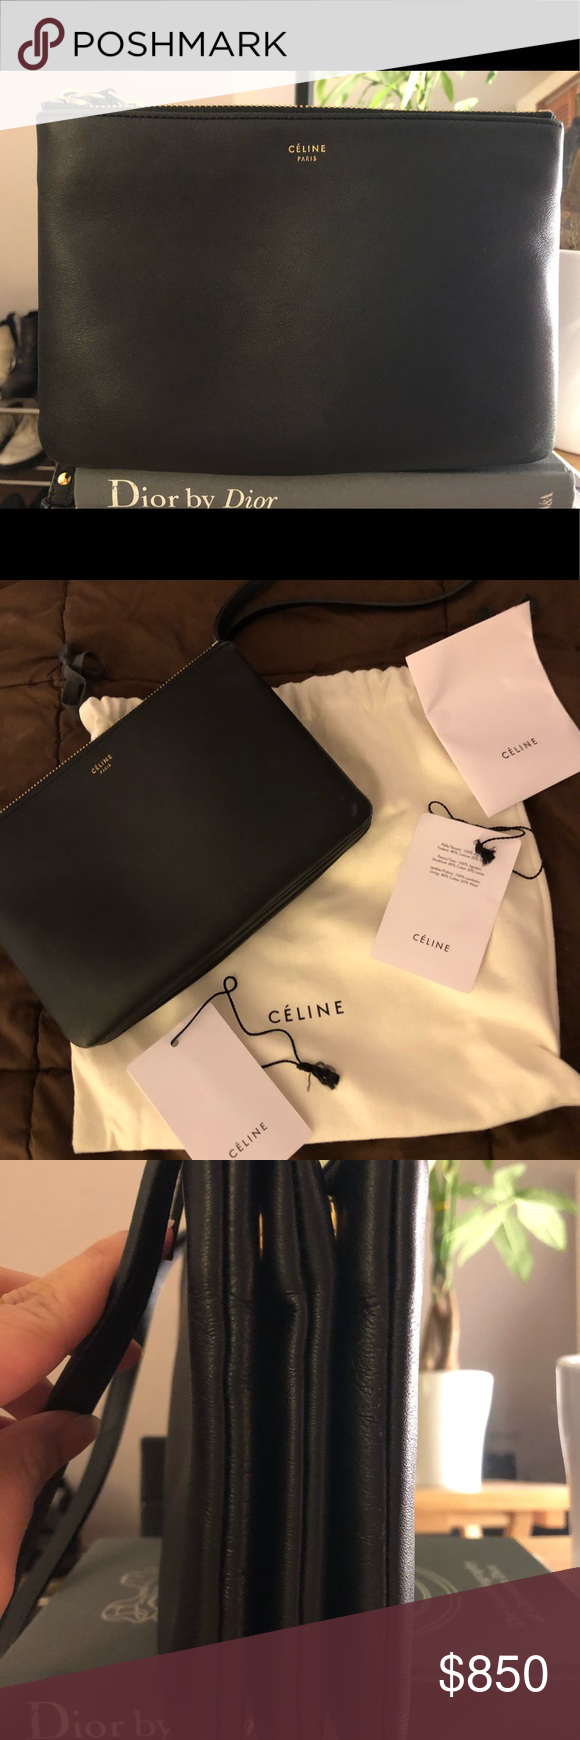 Celine black small trio bag Lamb skin leather Has few scratches on the  corner of the bag Comes with dustbag and tags Beautiful lamb skin leather  See last ... 8450c33150